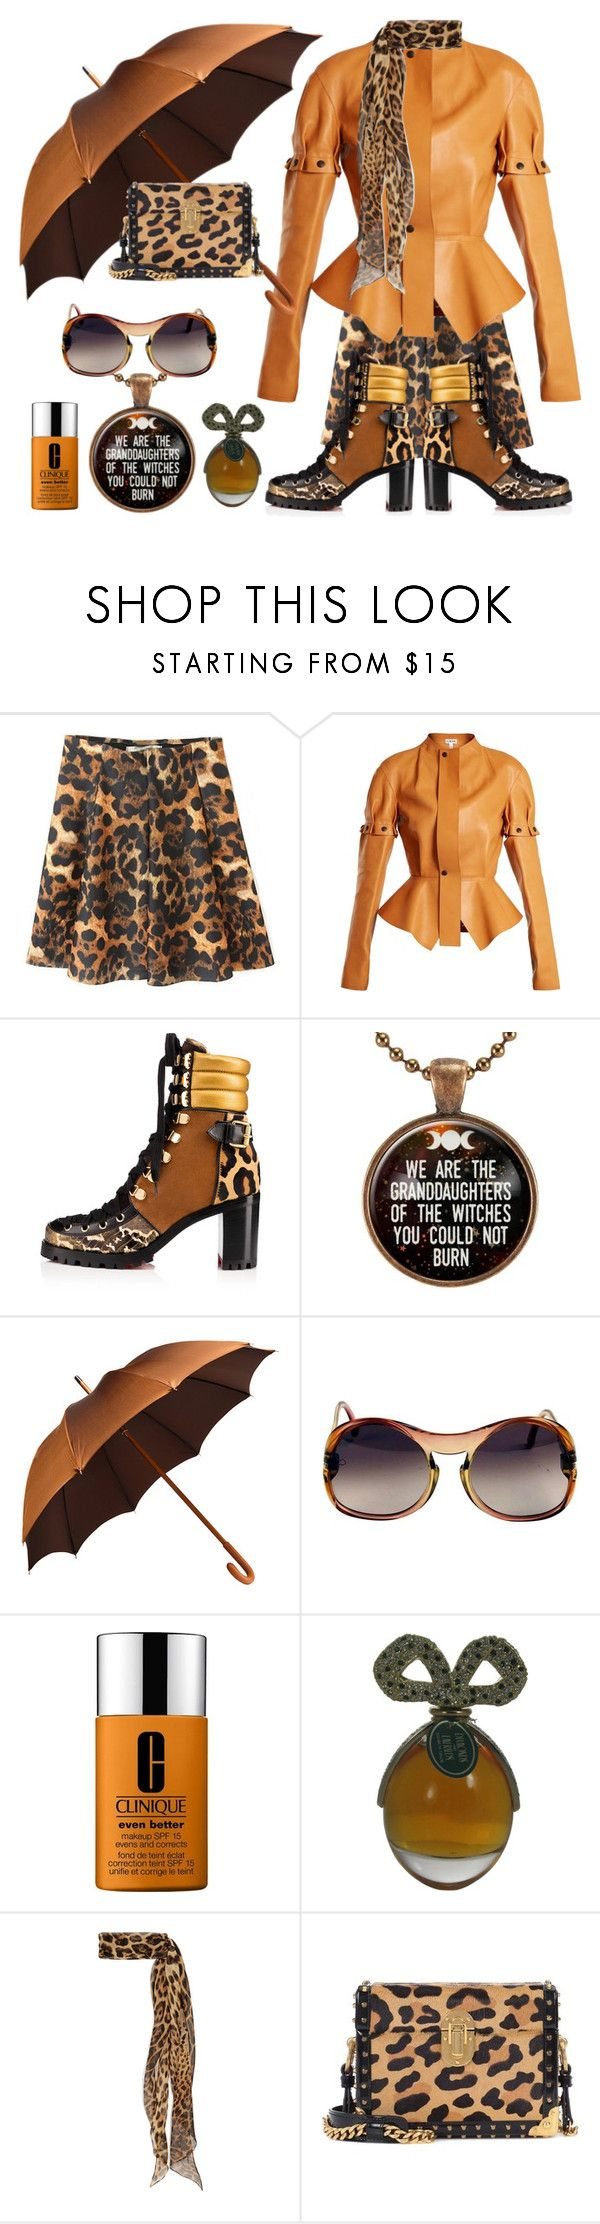 """""""Leopardy jeopardy"""" by didesi ❤ liked on Polyvore featuring WithChic, Loewe, Christian Louboutin, Ghurka, Playboy, Clinique, Yves Saint Laurent and Prada"""